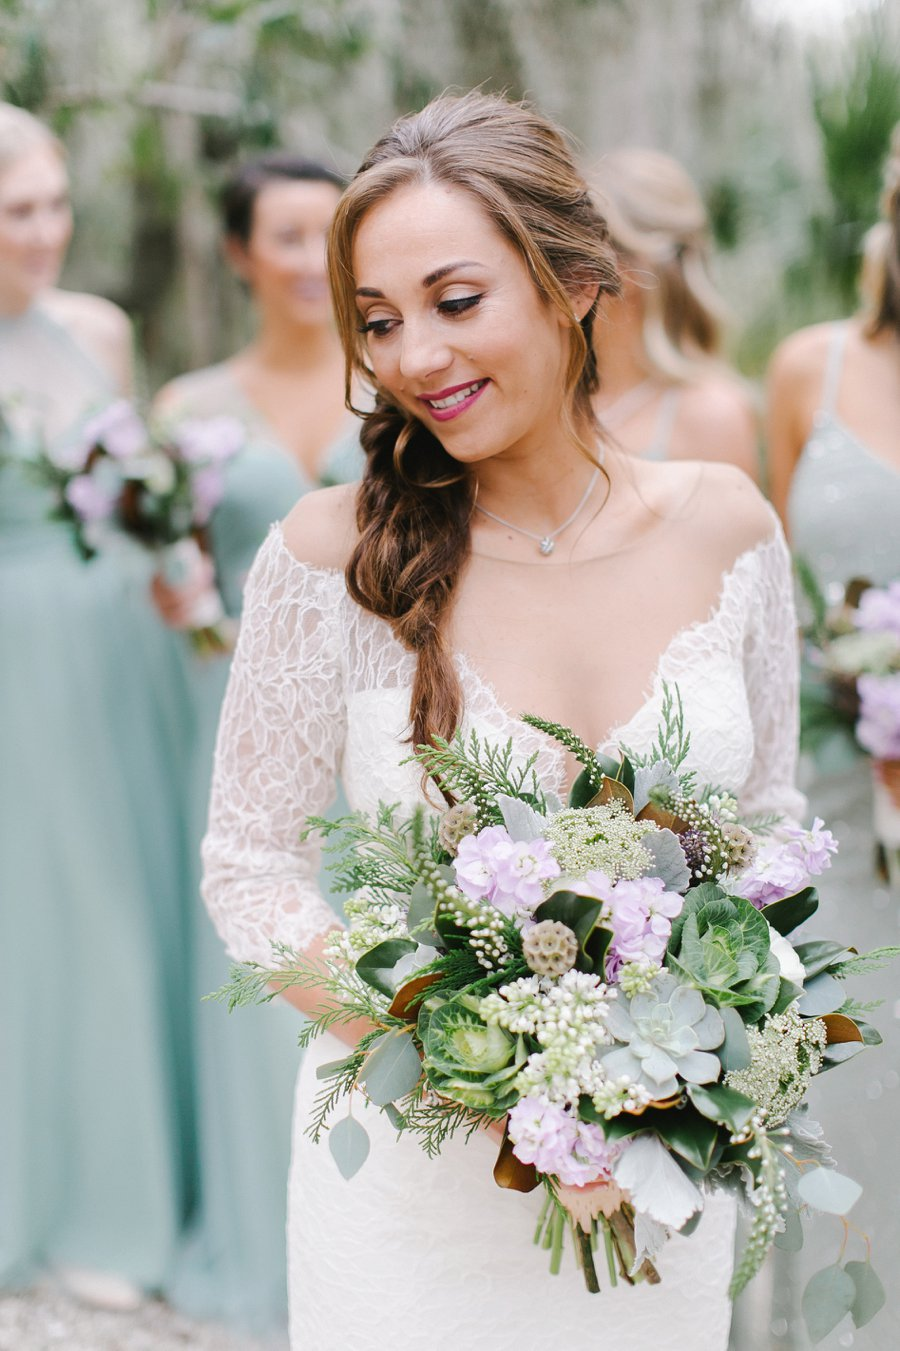 A Rustic Elegant Woodland Inspired Wedding via TheELD.com